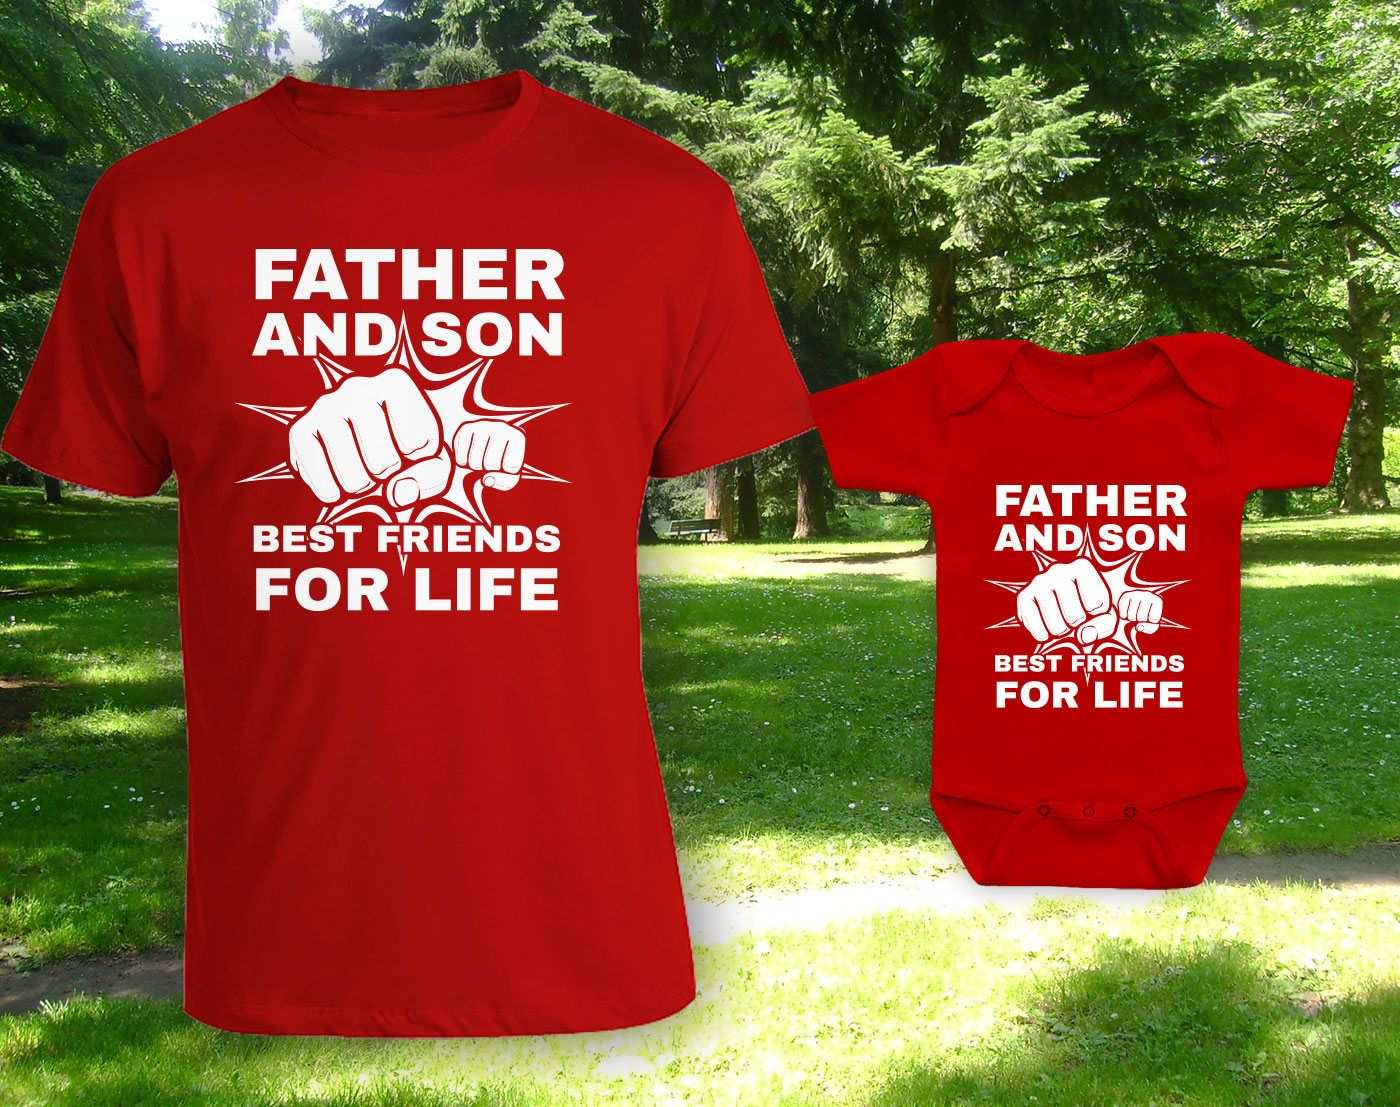 25a0fca82 Father and Son Best Friends for Life matching father son t-shirts, father's  day gift, gift for dad, when is fathers day,bodysuit-CCB-604-604 by ...